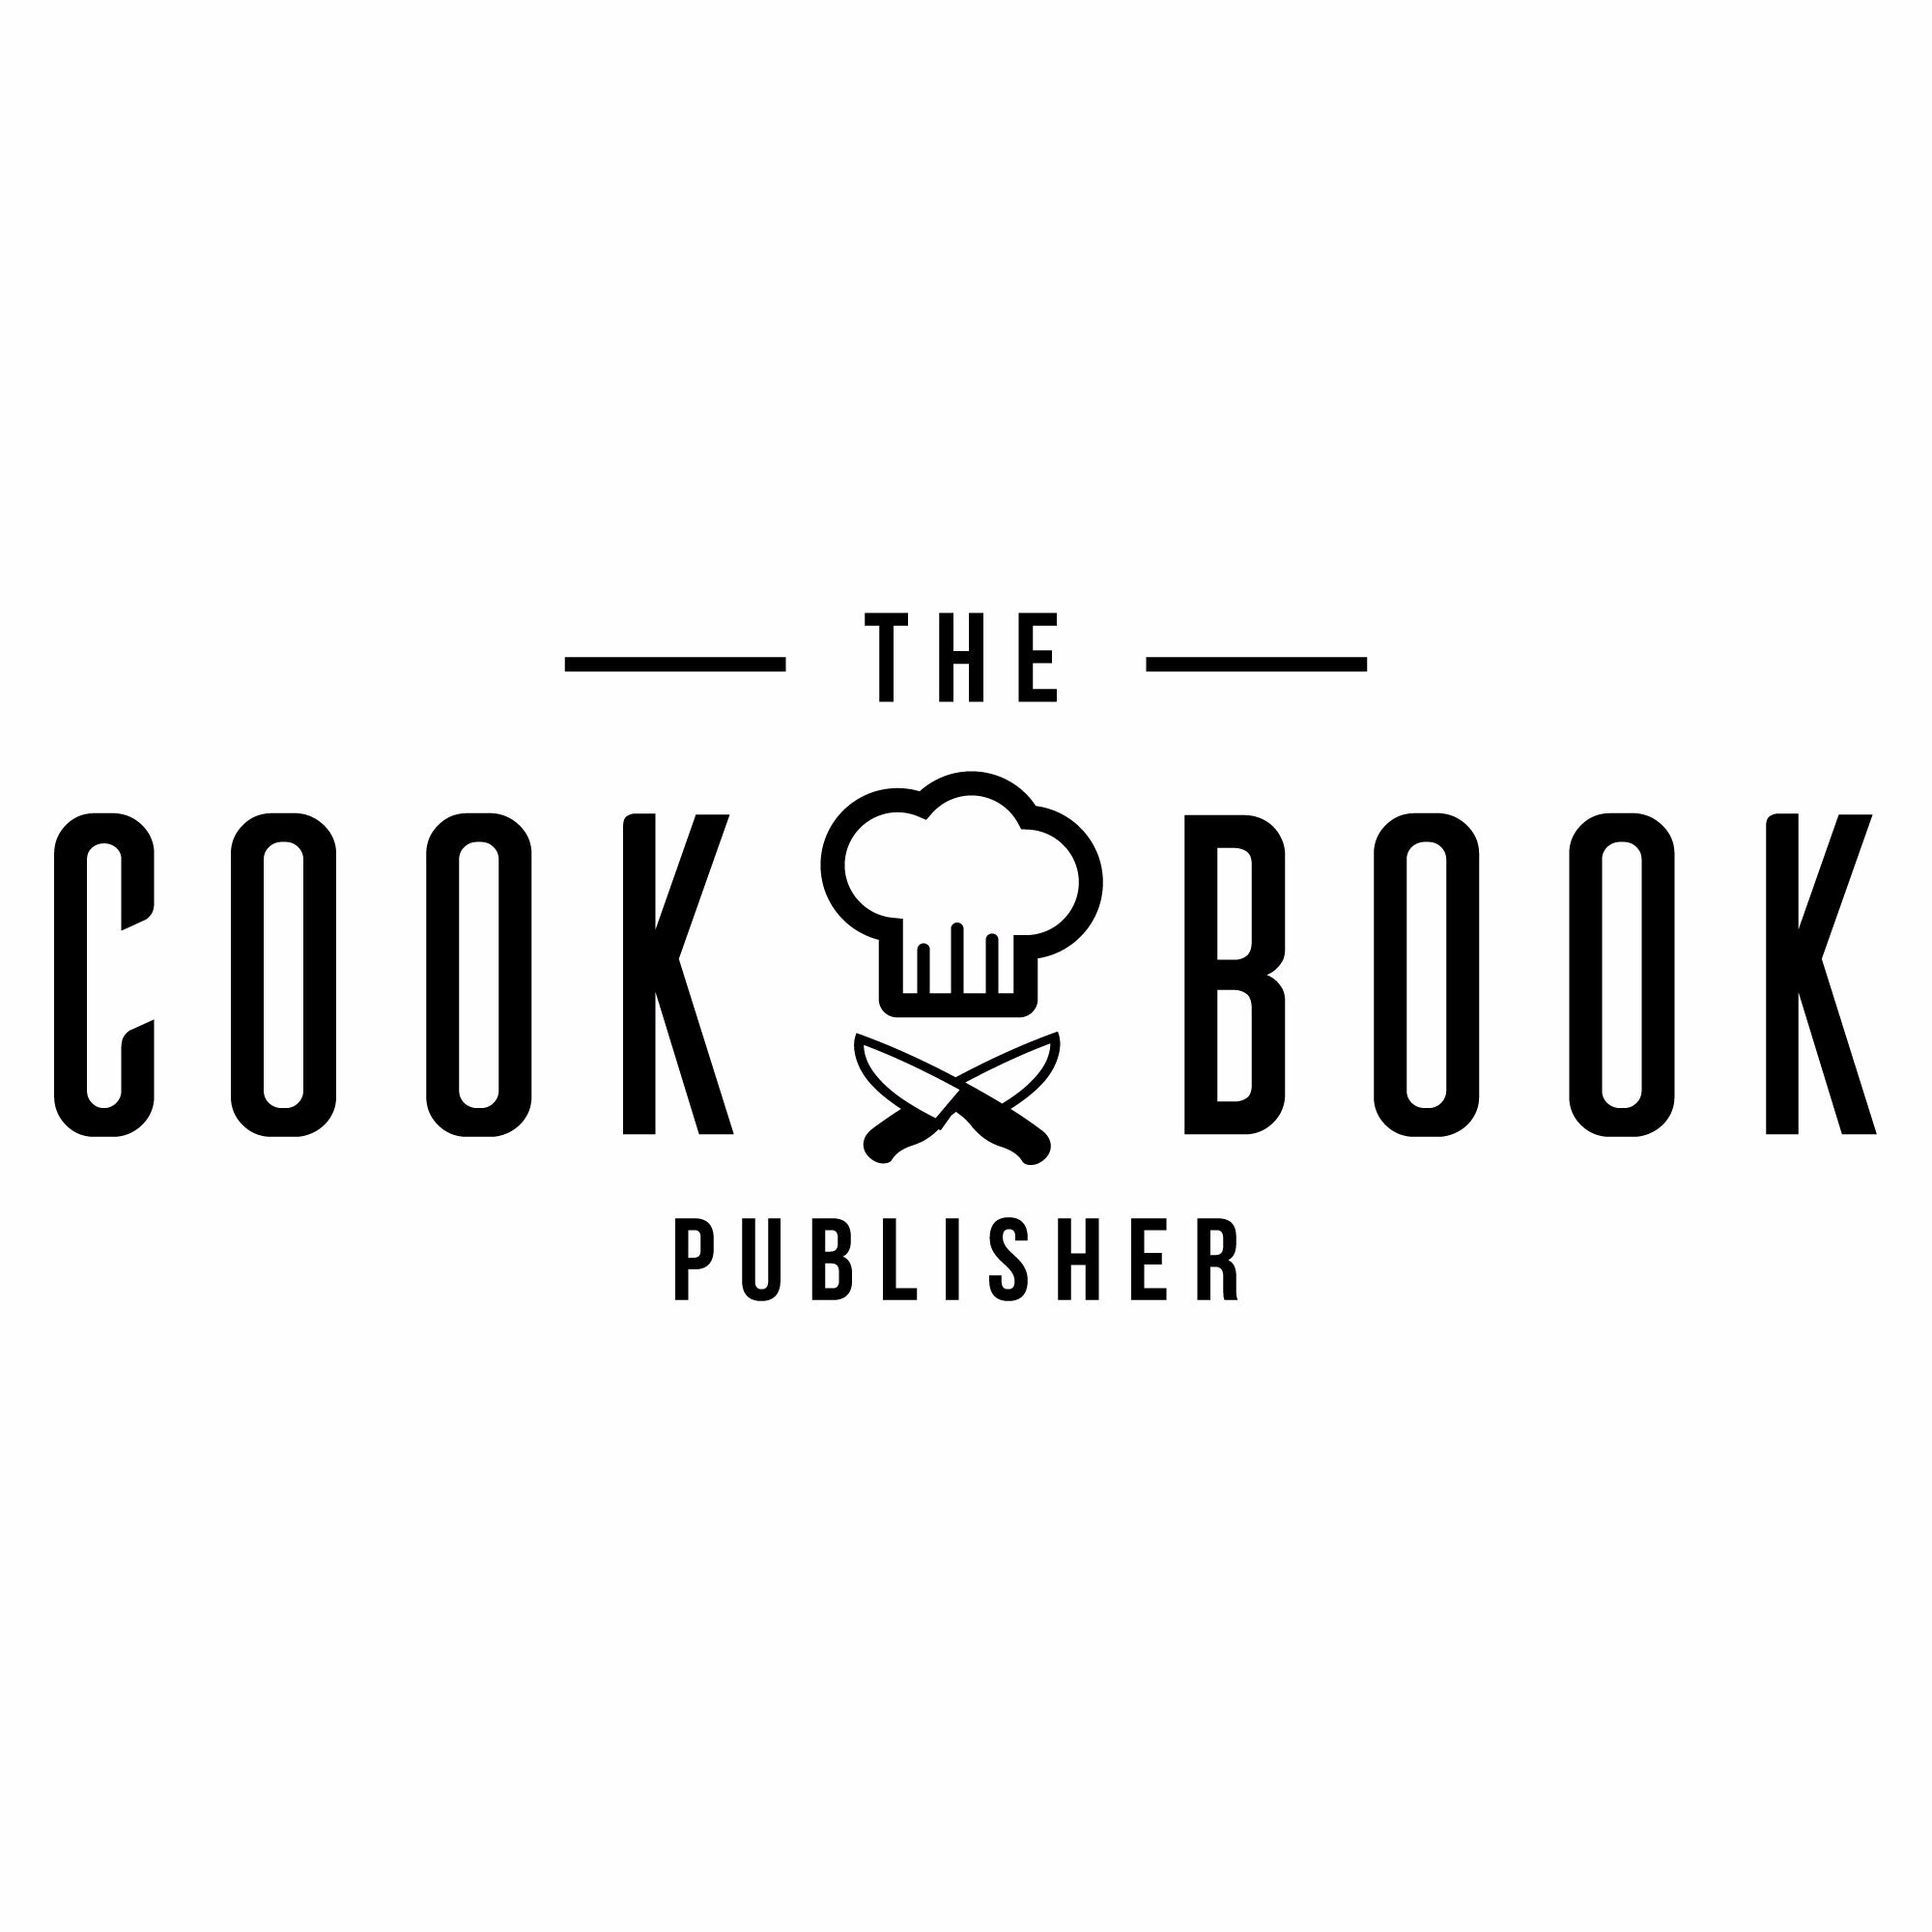 The Cookbook Publisher